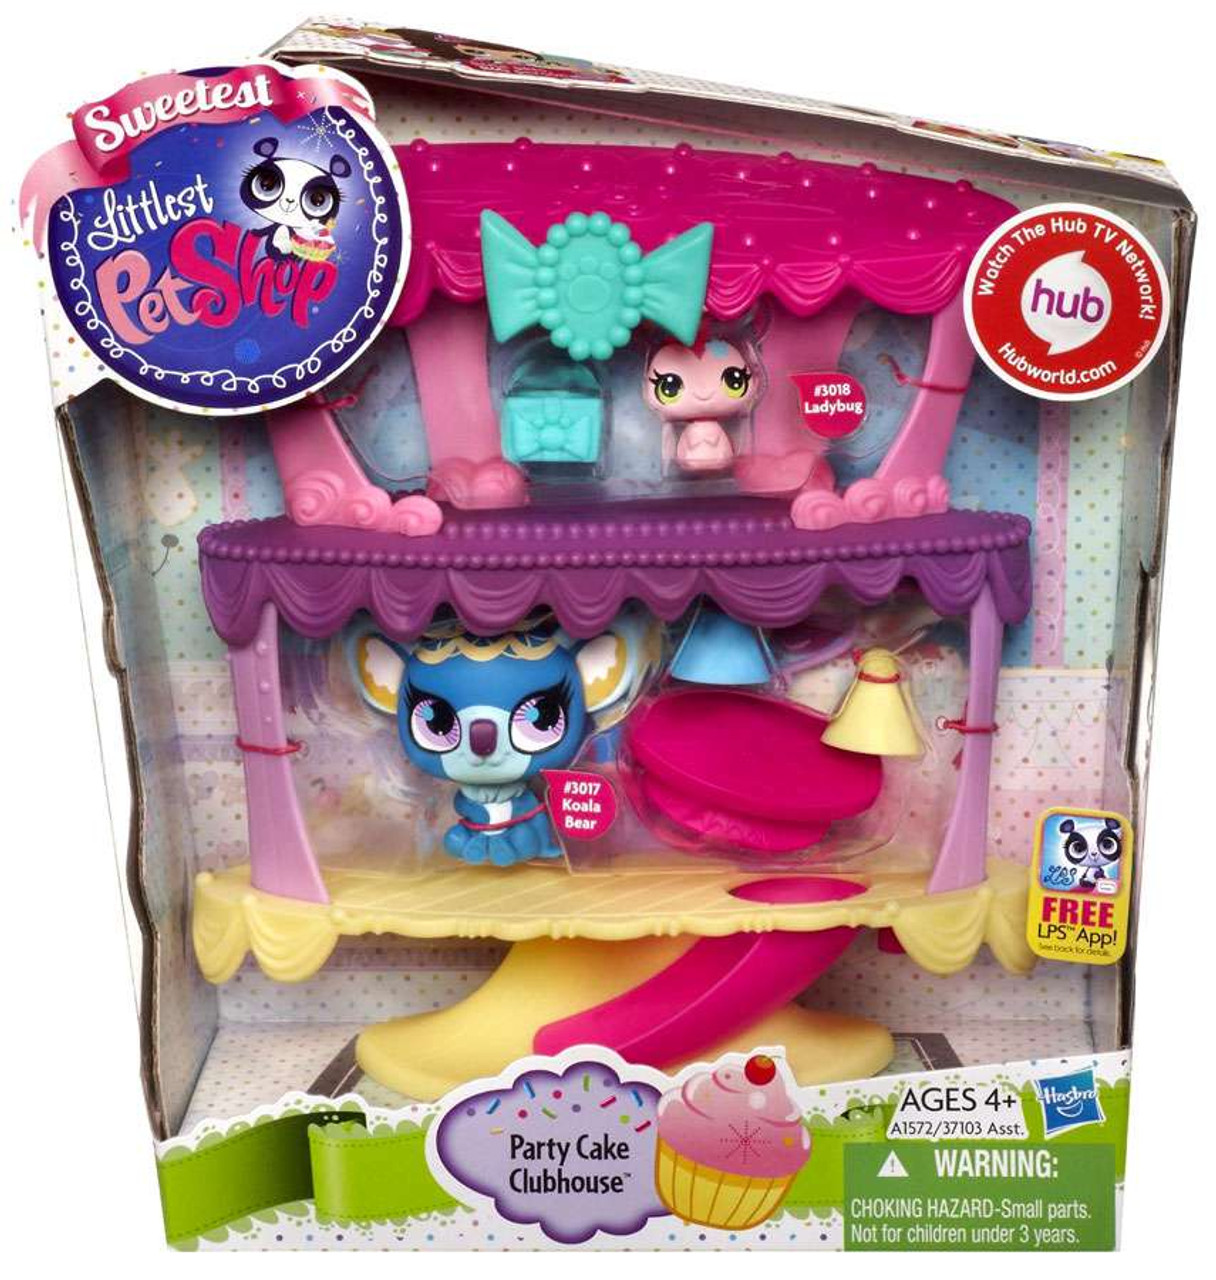 Littlest Pet Shop Party Cake Clubhouse Playset